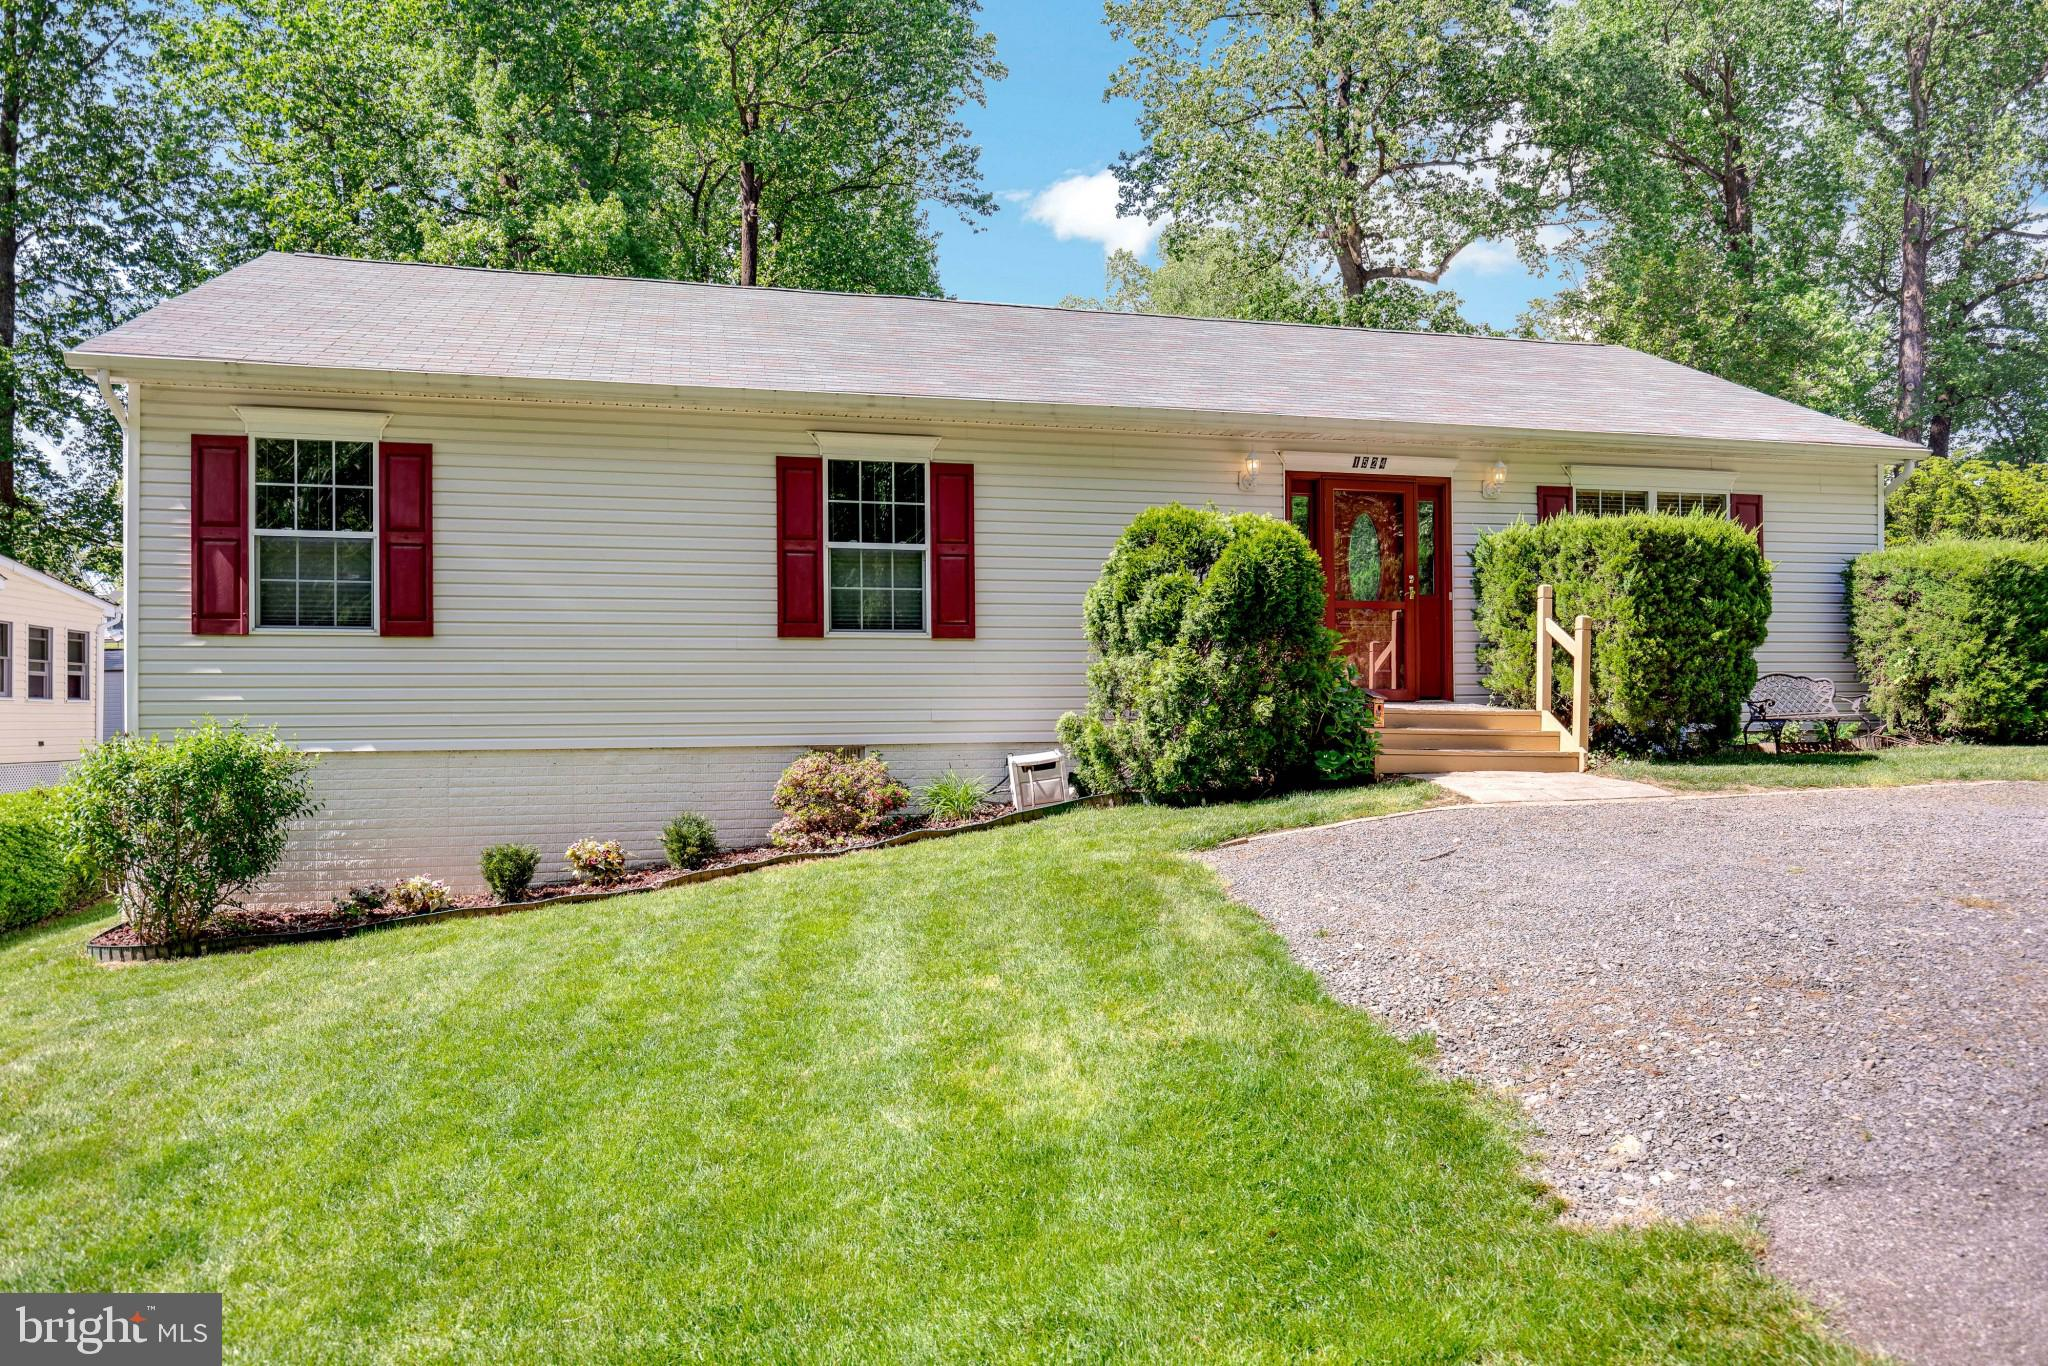 Welcome to this sweet home in beautiful, bucolic Saint Leonard!  Uniquely located on a quiet street